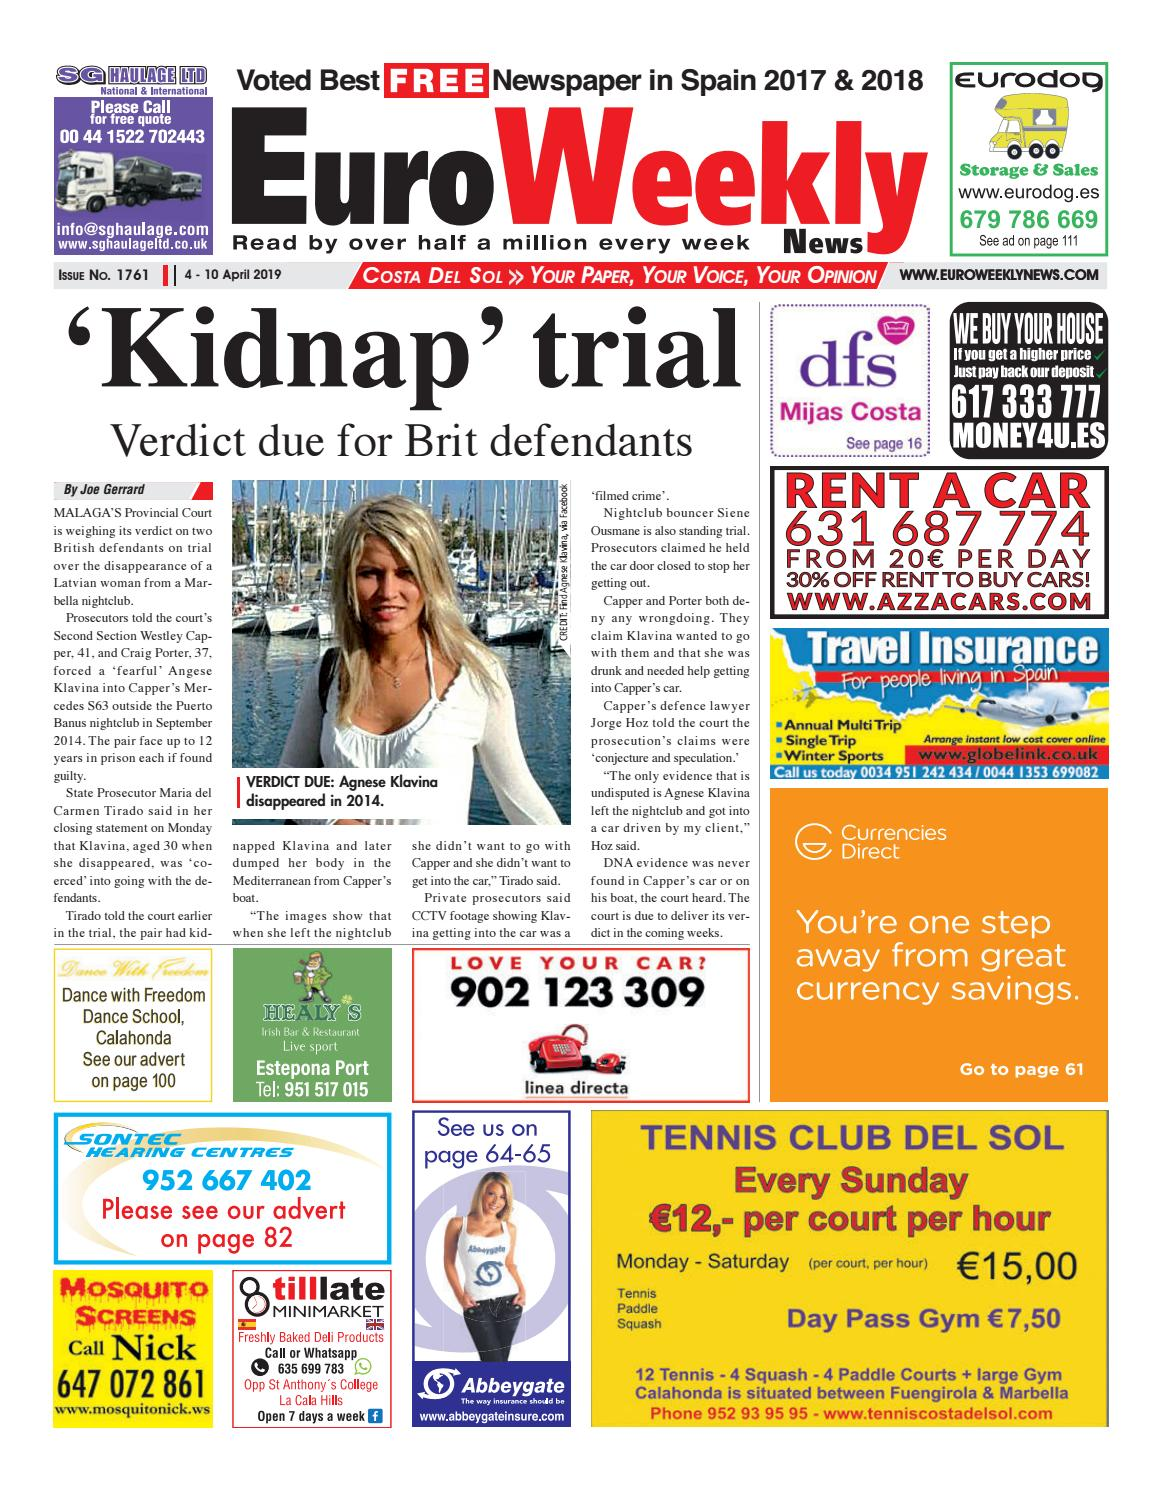 Le Bon Coin Tifon euro weekly news - costa del sol 4 - 10 april 2019 issue